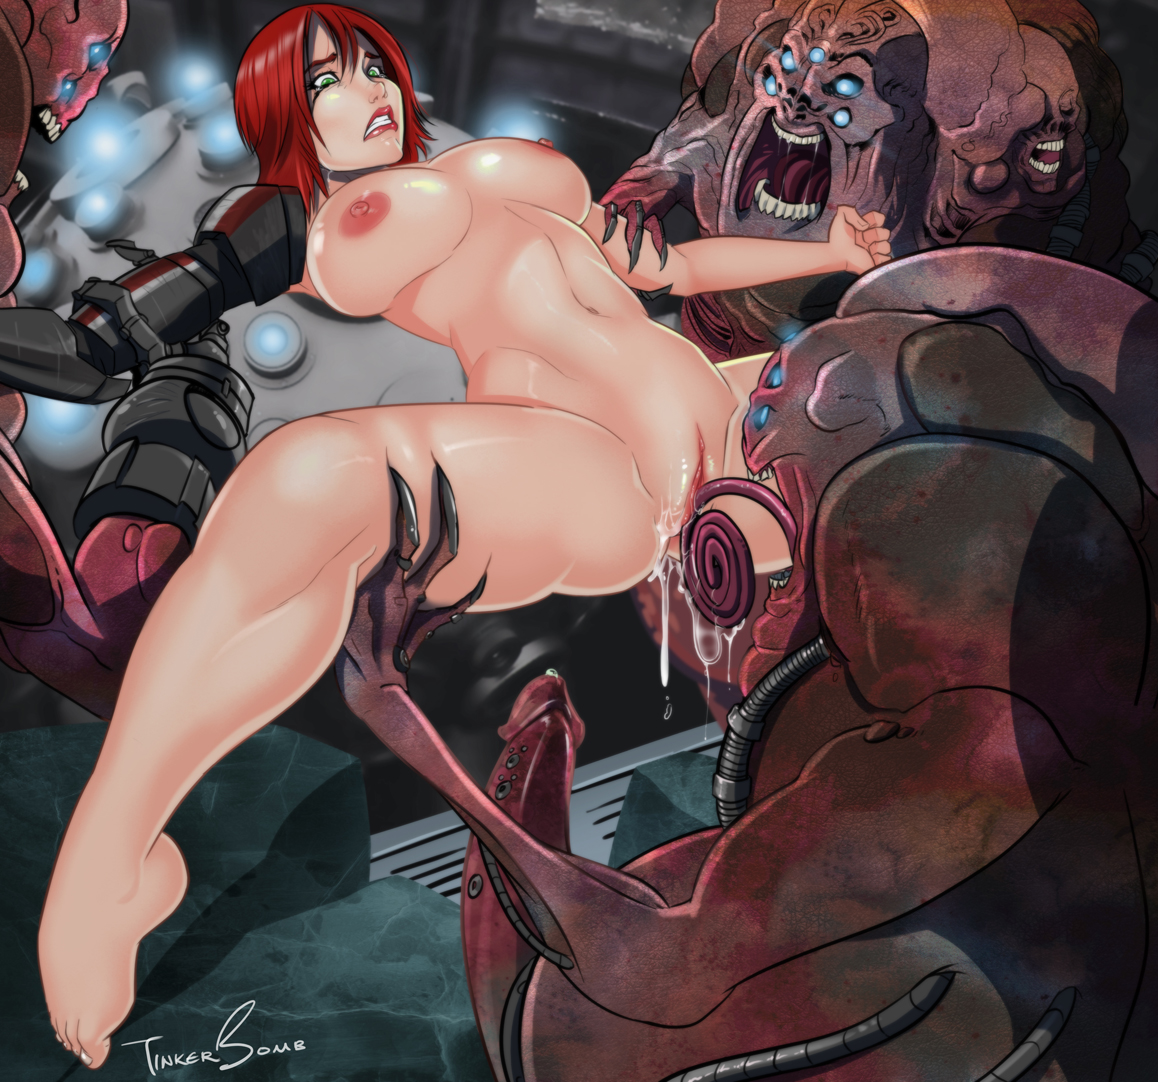 Girl shepard female hentai nsfw thumbs